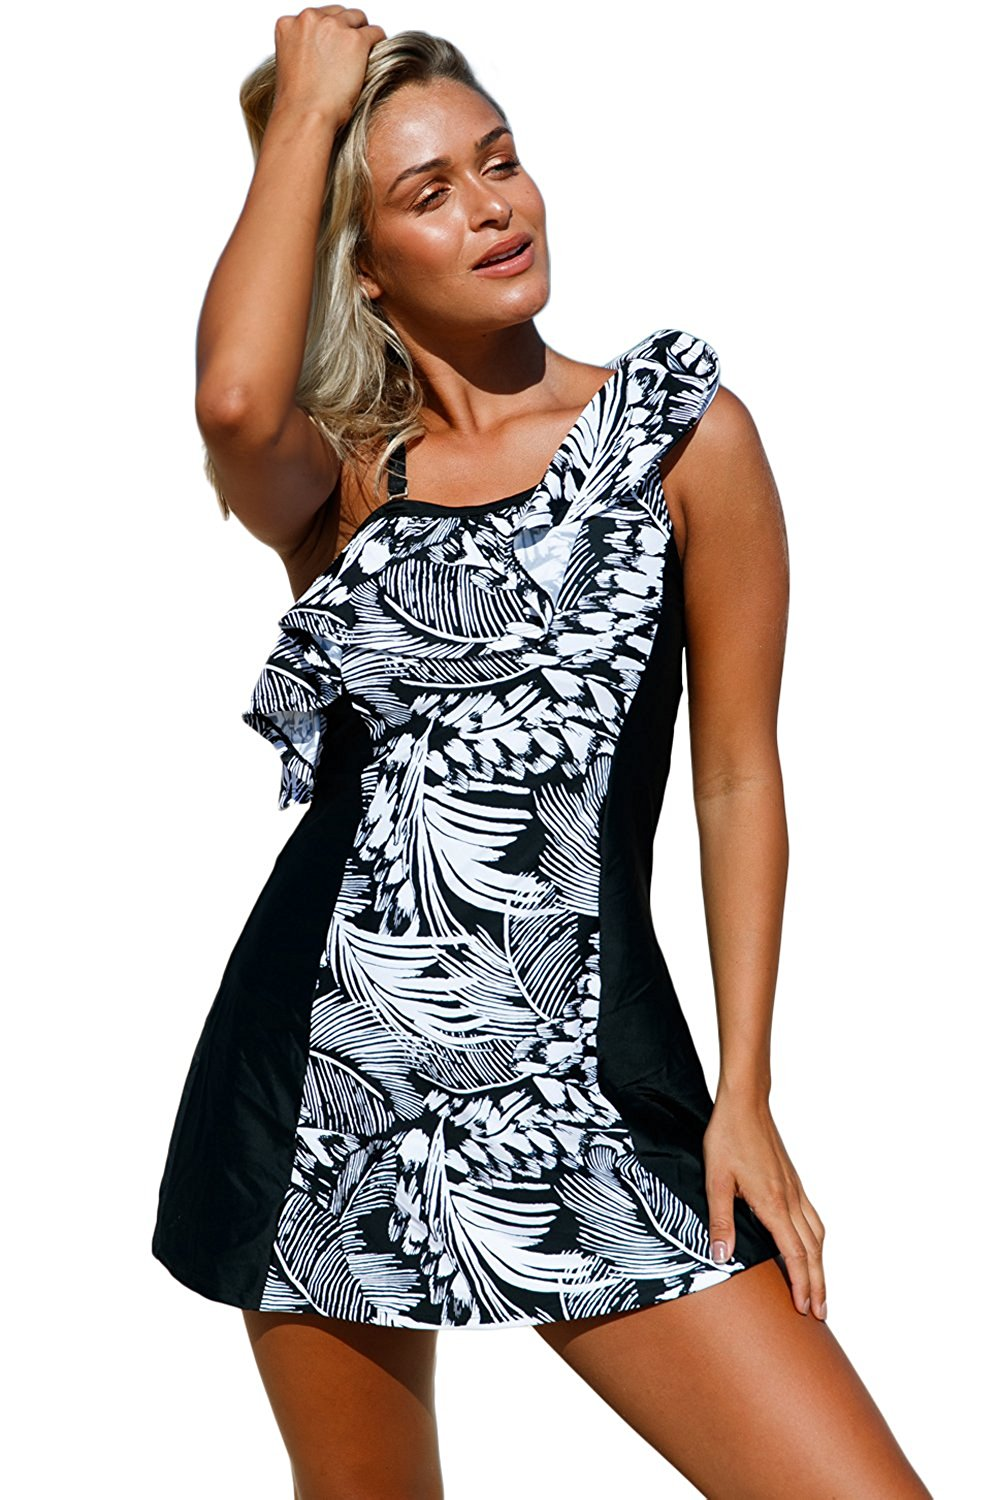 ba8447e613 Get Quotations · Prime Leader Women s Monochrome Jungle Swim Dress with  Shorts